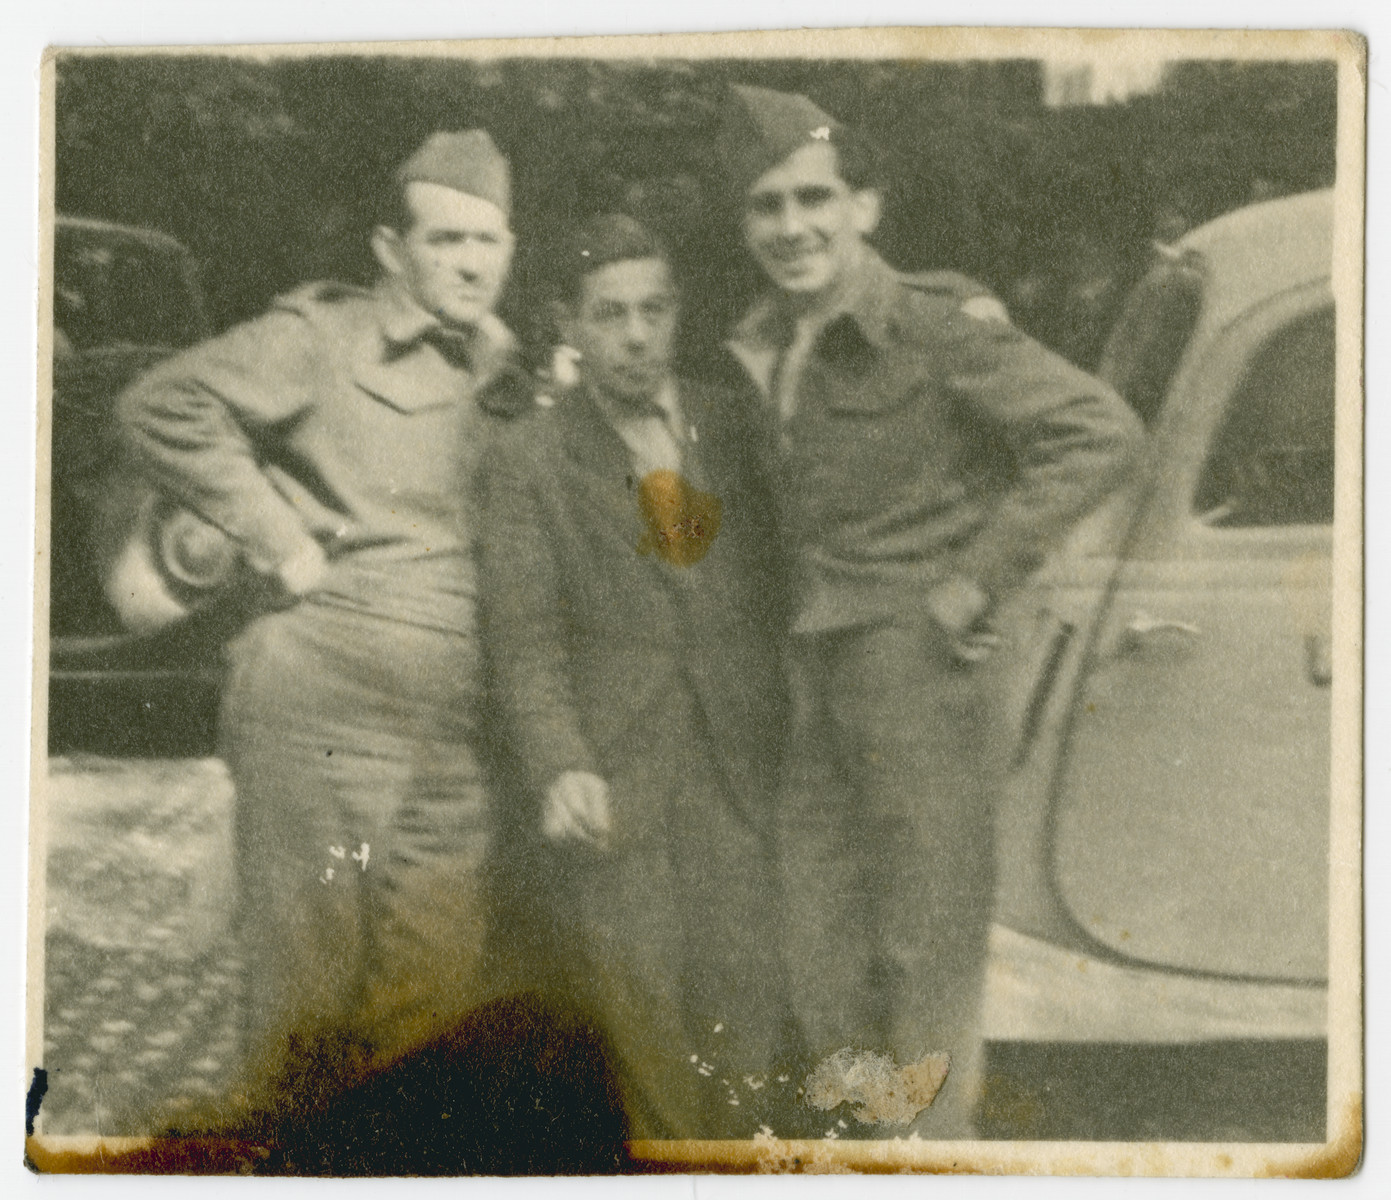 Three men pose beside an automobile in postwar Munich.  On the right is Robert Wilonsky who worked for the Joint Distribution Committee.